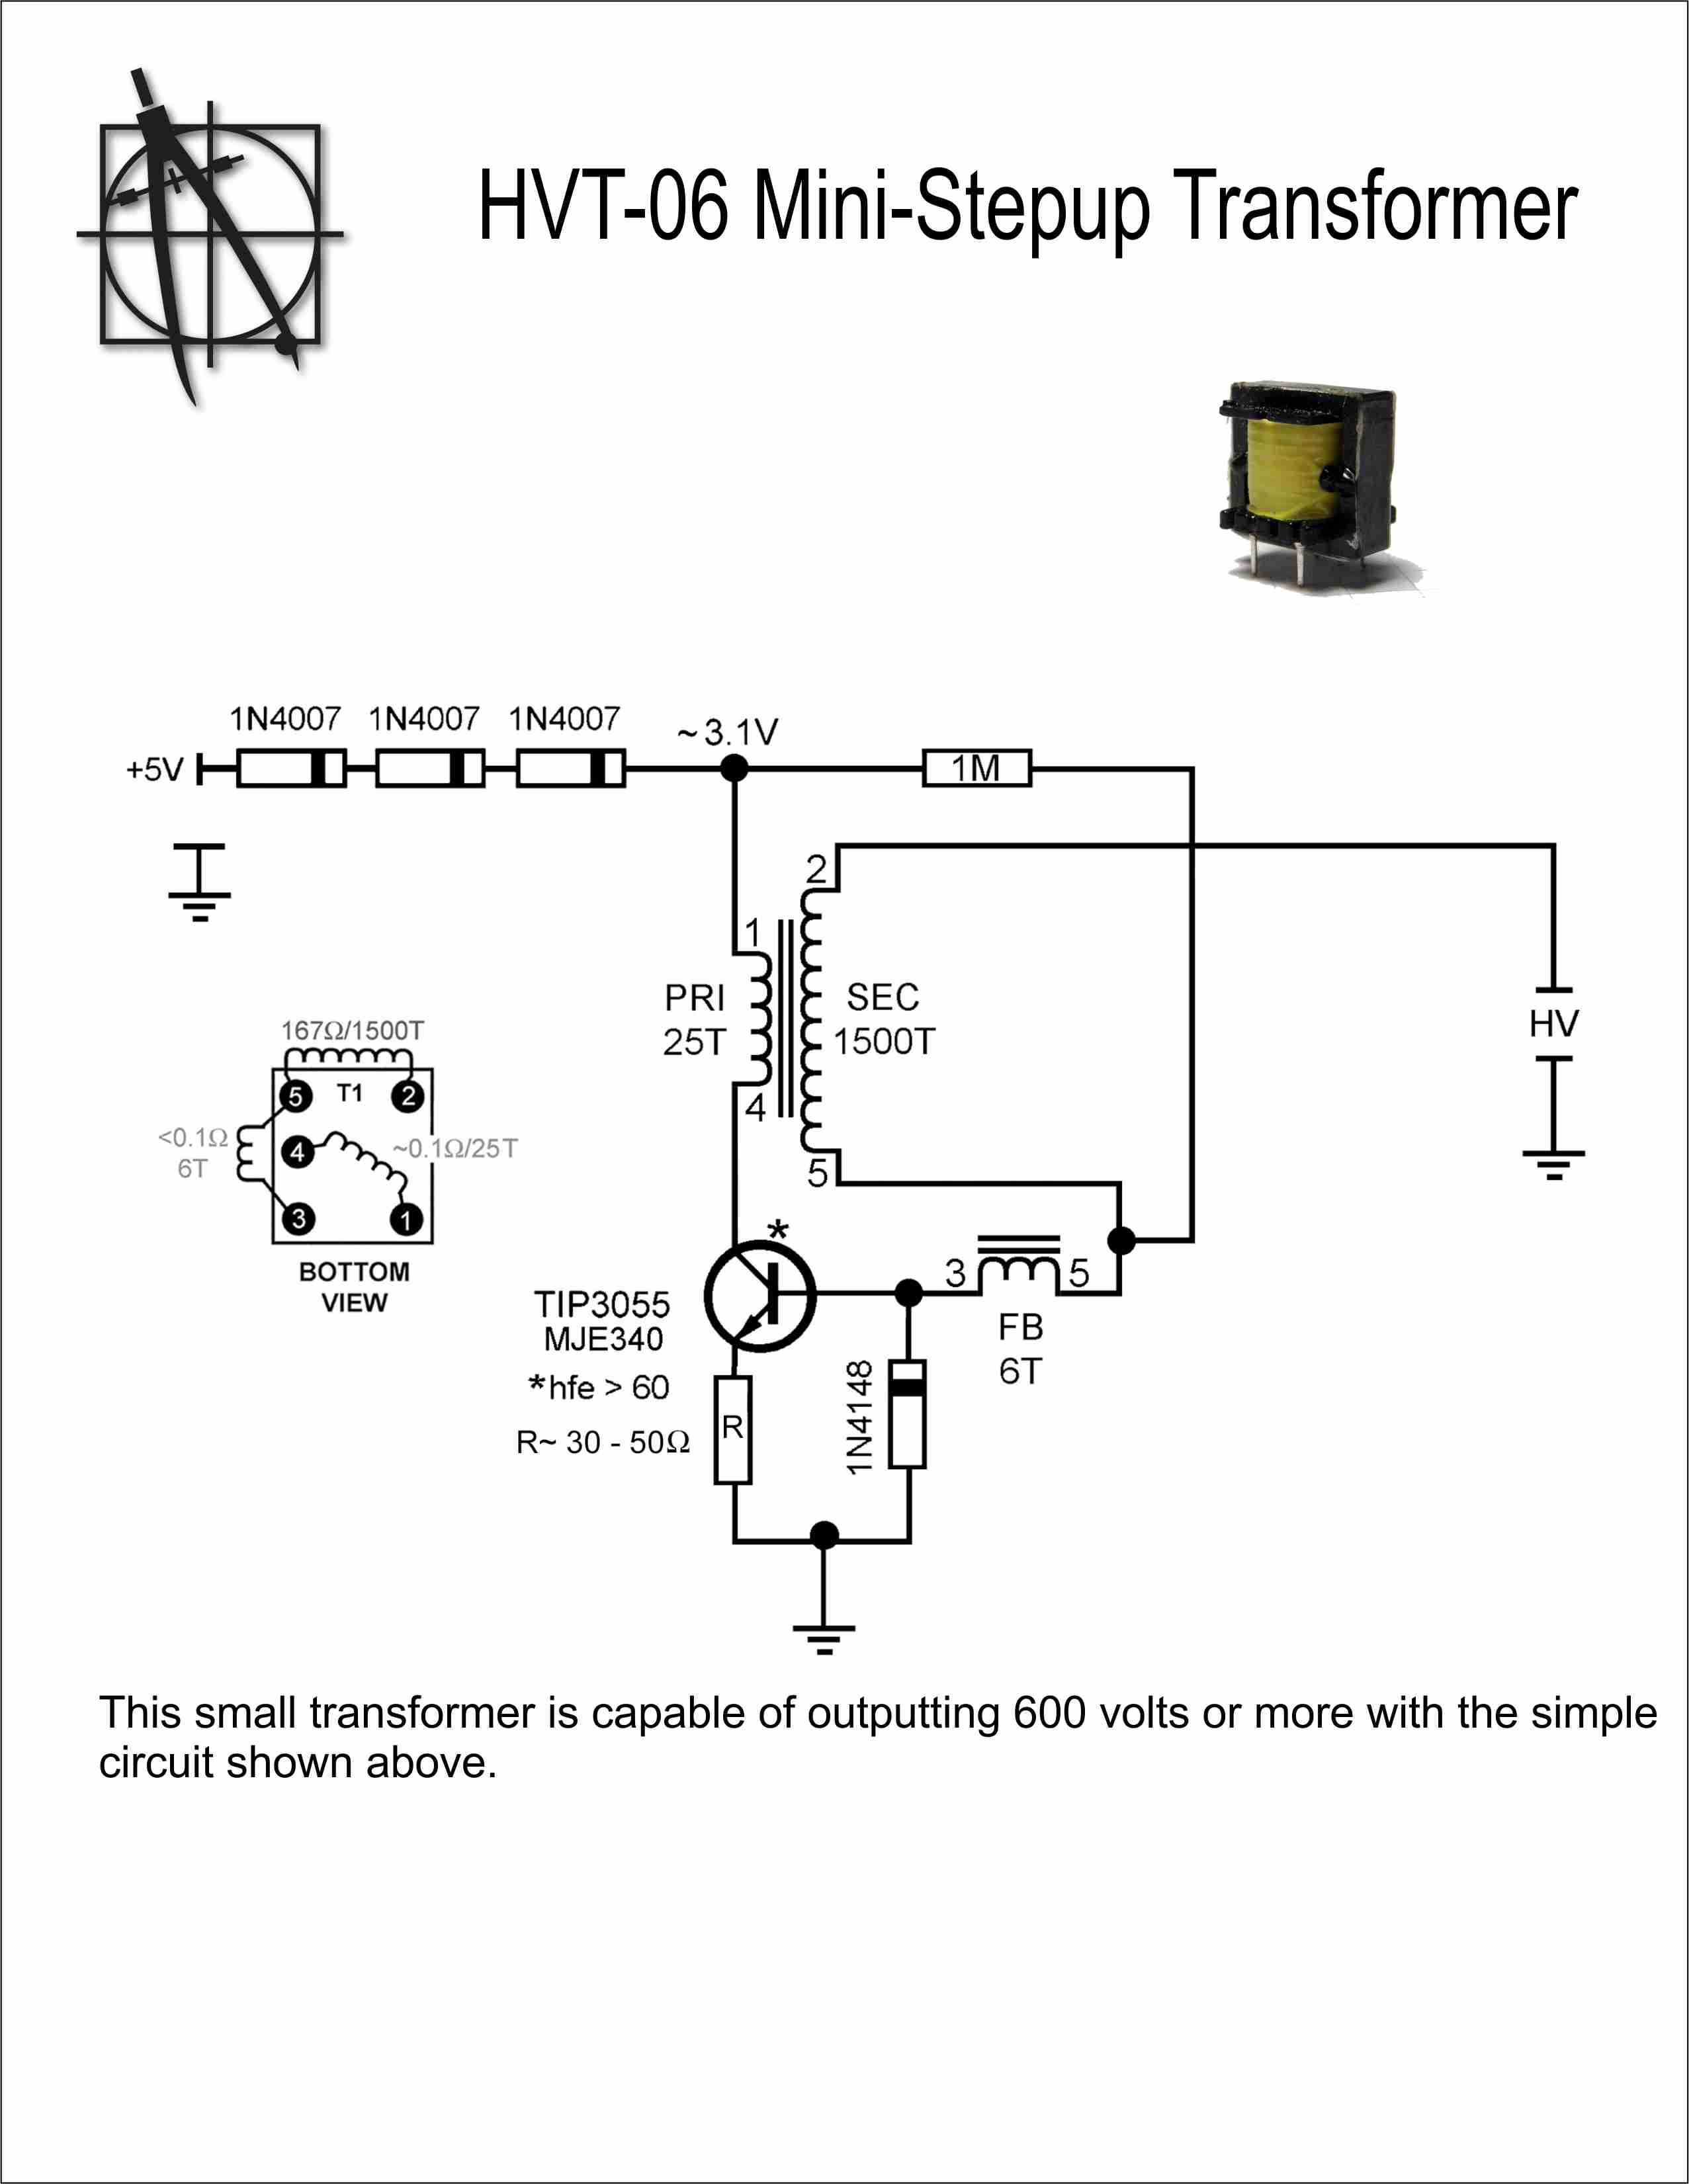 Solar Boost Converter Mppt Charge Controller further Ultrafast Electronic Circuit Breaker moreover 89502 How Diy Retrofit Elocker Wiring likewise Watlow 96 Rancilio Silvia Brew And Steam Pid Control Wiring Diagram additionally Transformers. on dc series motor diagrams